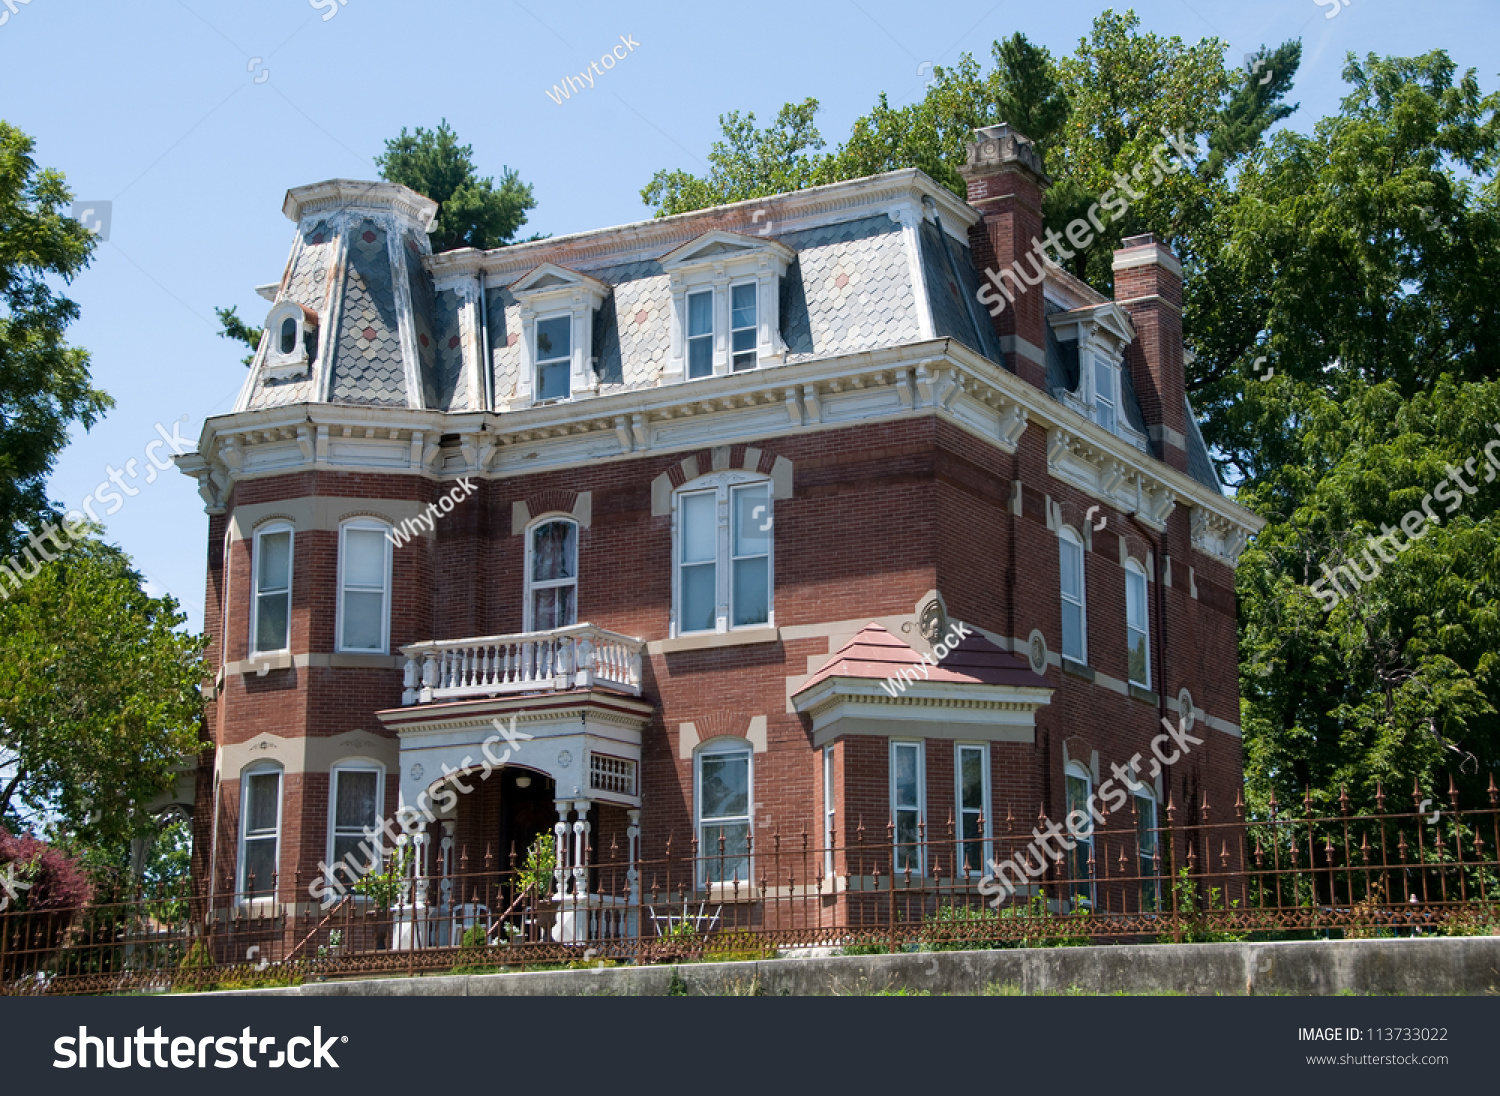 Classic american home stock photo 113733022 shutterstock for American classic house mouse